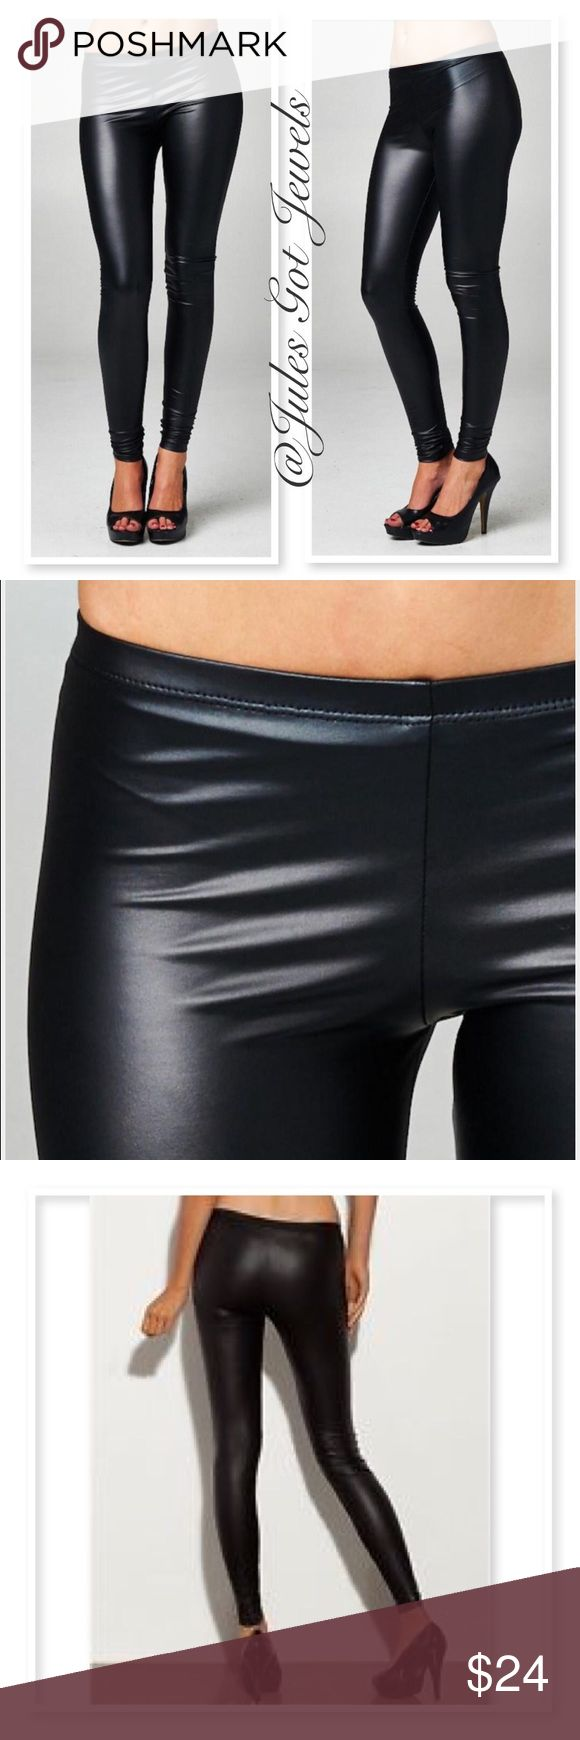 """""""Liquid"""" Leggings The hottest trend in leggings are these soft faux leather black liquid leggings! This legging is made with light weight pleather fabric that is soft and stretchy. Material consists of 95% polyester and 5% spandex. cherish Pants Leggings"""